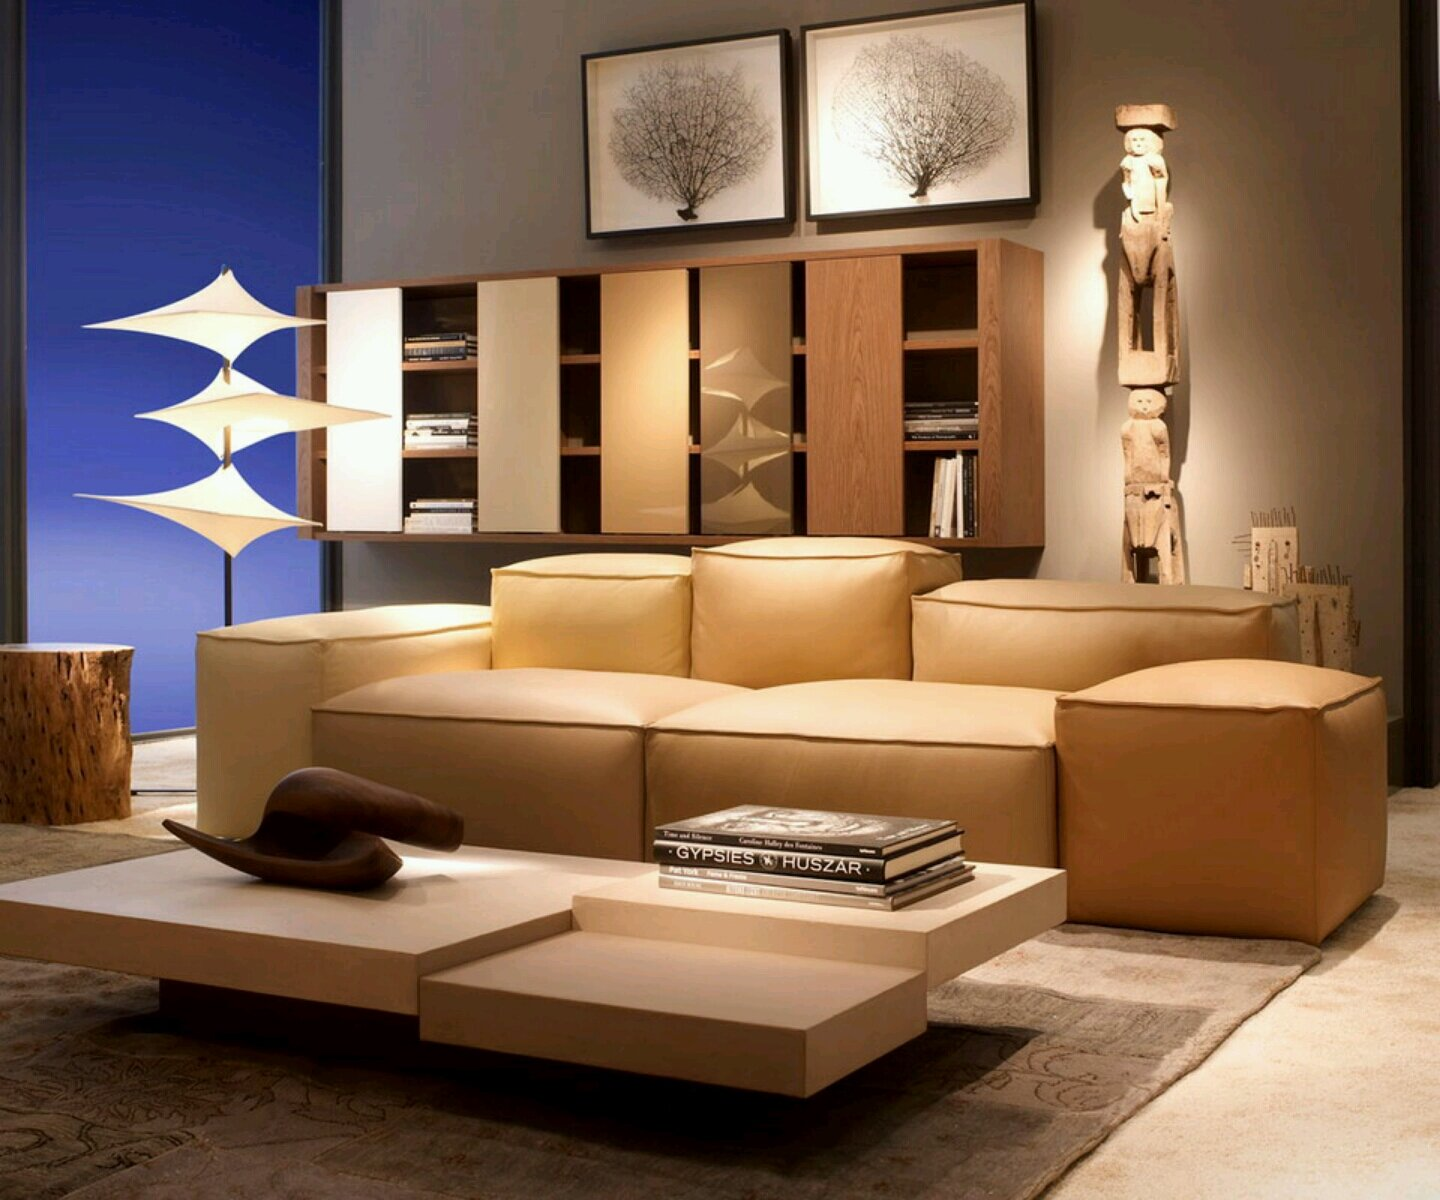 15 really beautiful sofa designs and ideas for Modern style sofa